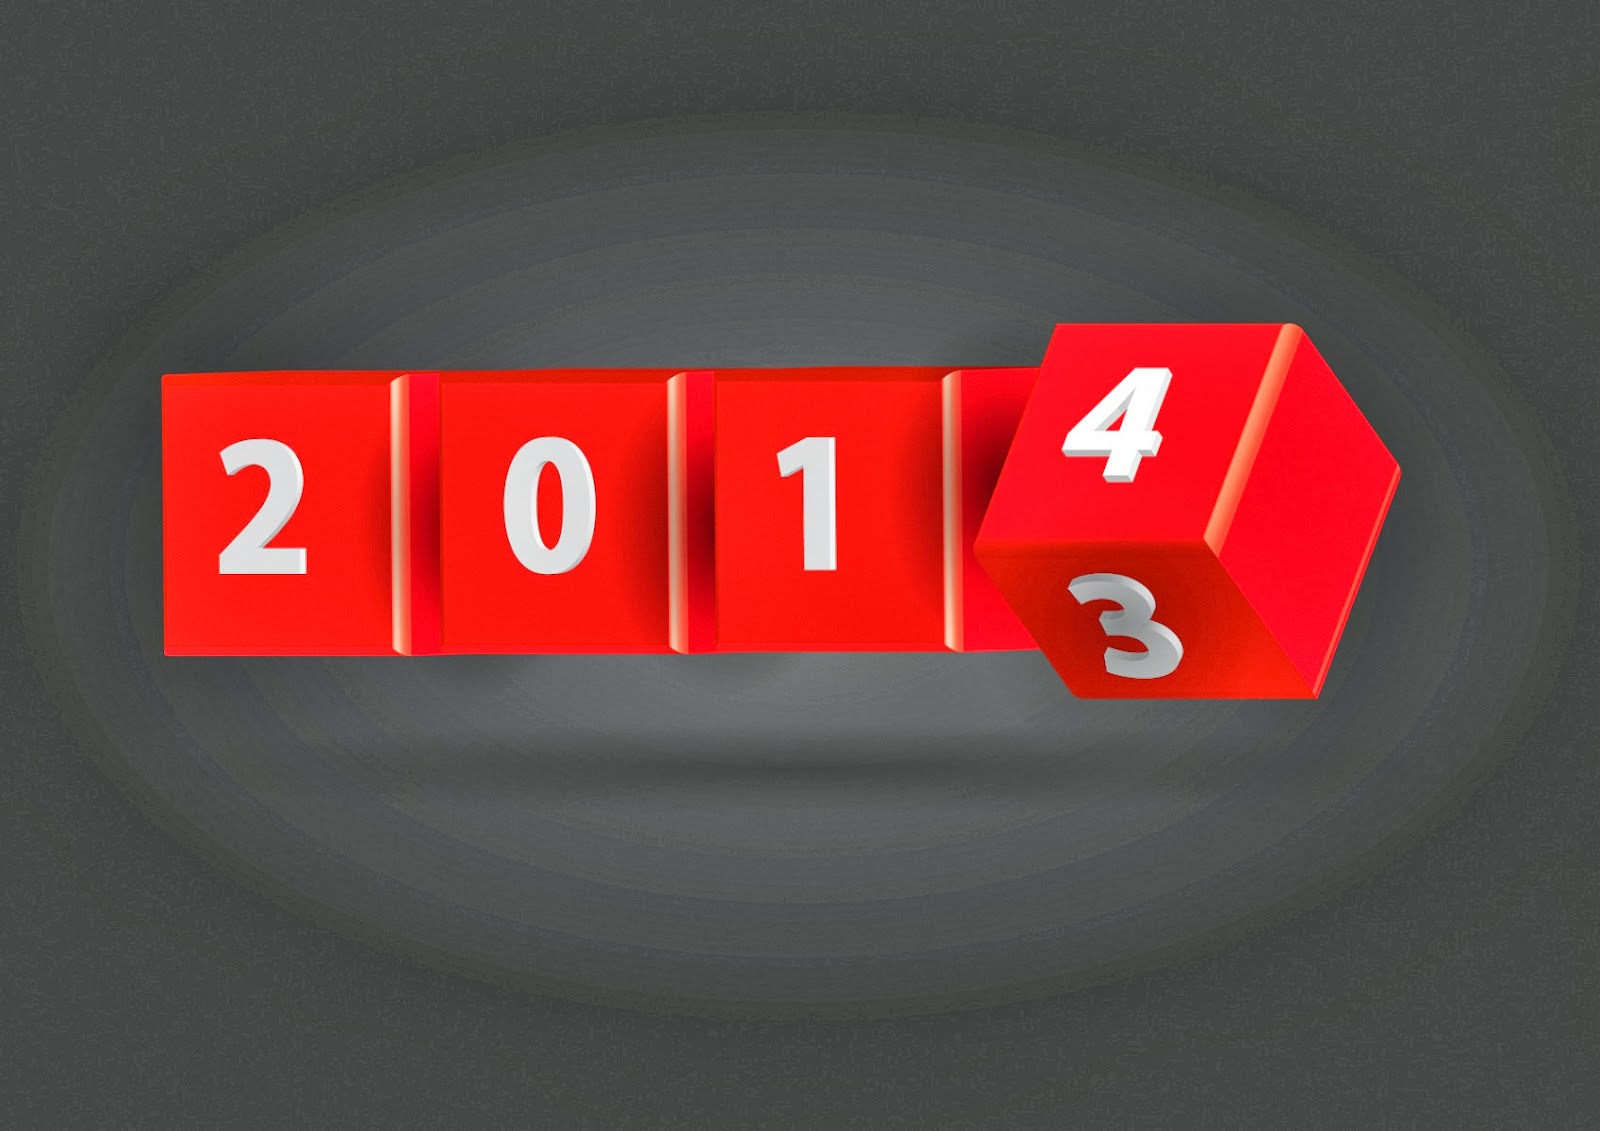 Where is software development headed in 2014